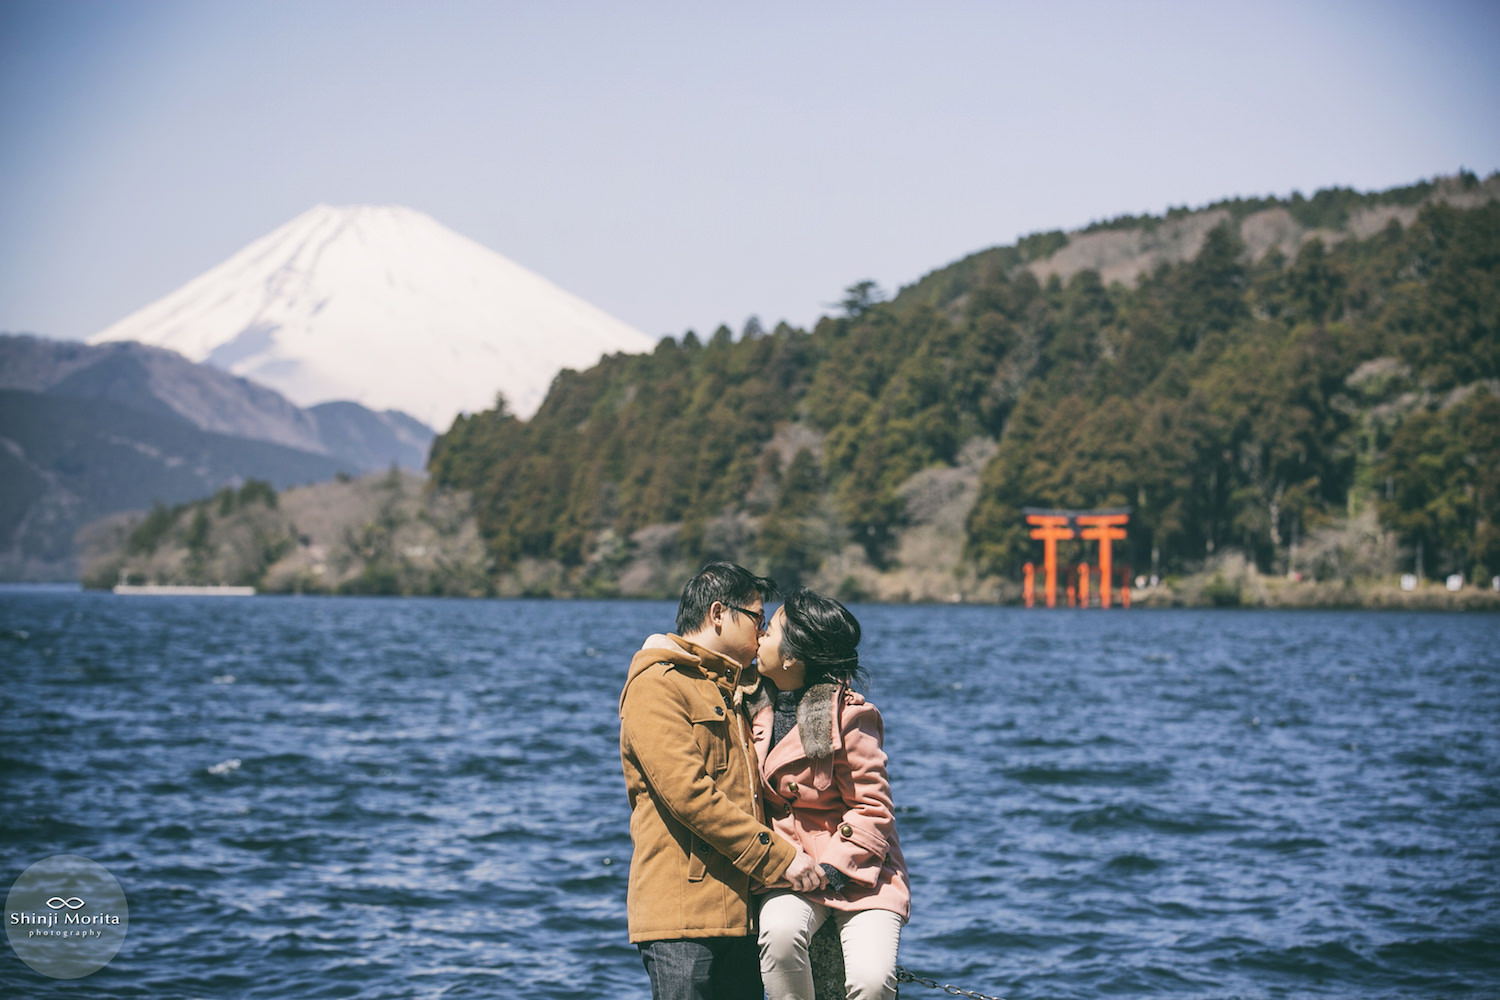 A couple kissing in Ashinoko lake in Hakone with Hakone shrine and Mt. Fuji in the background